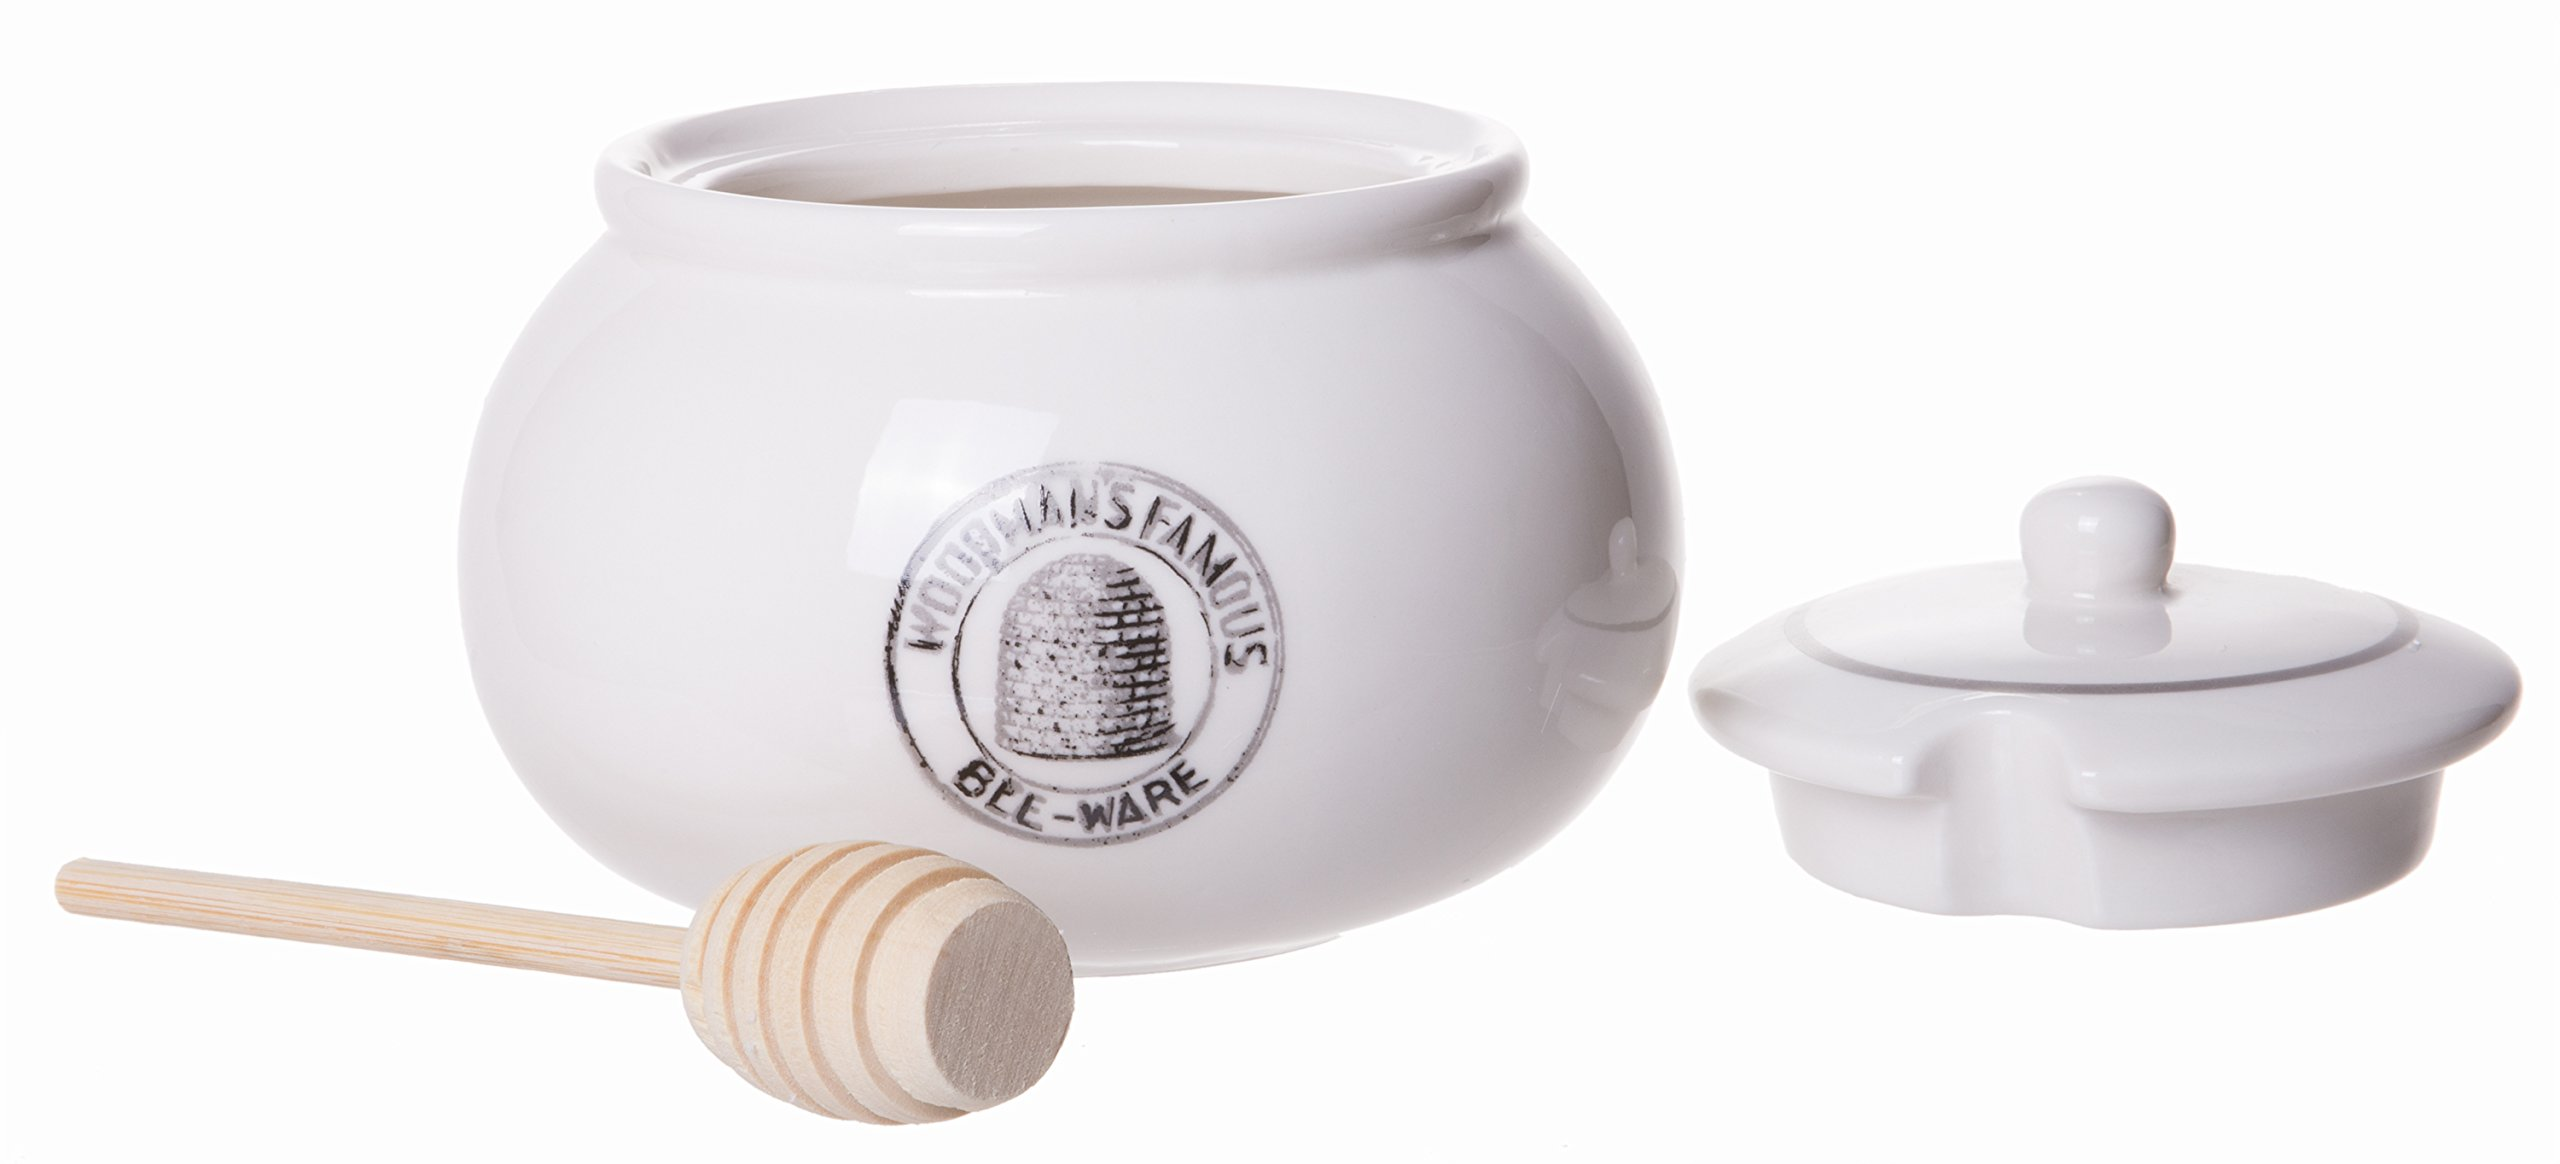 Classic Ceramic Stoneware Lidded Honey Jar with Wooden Dipper, White, 5-inch